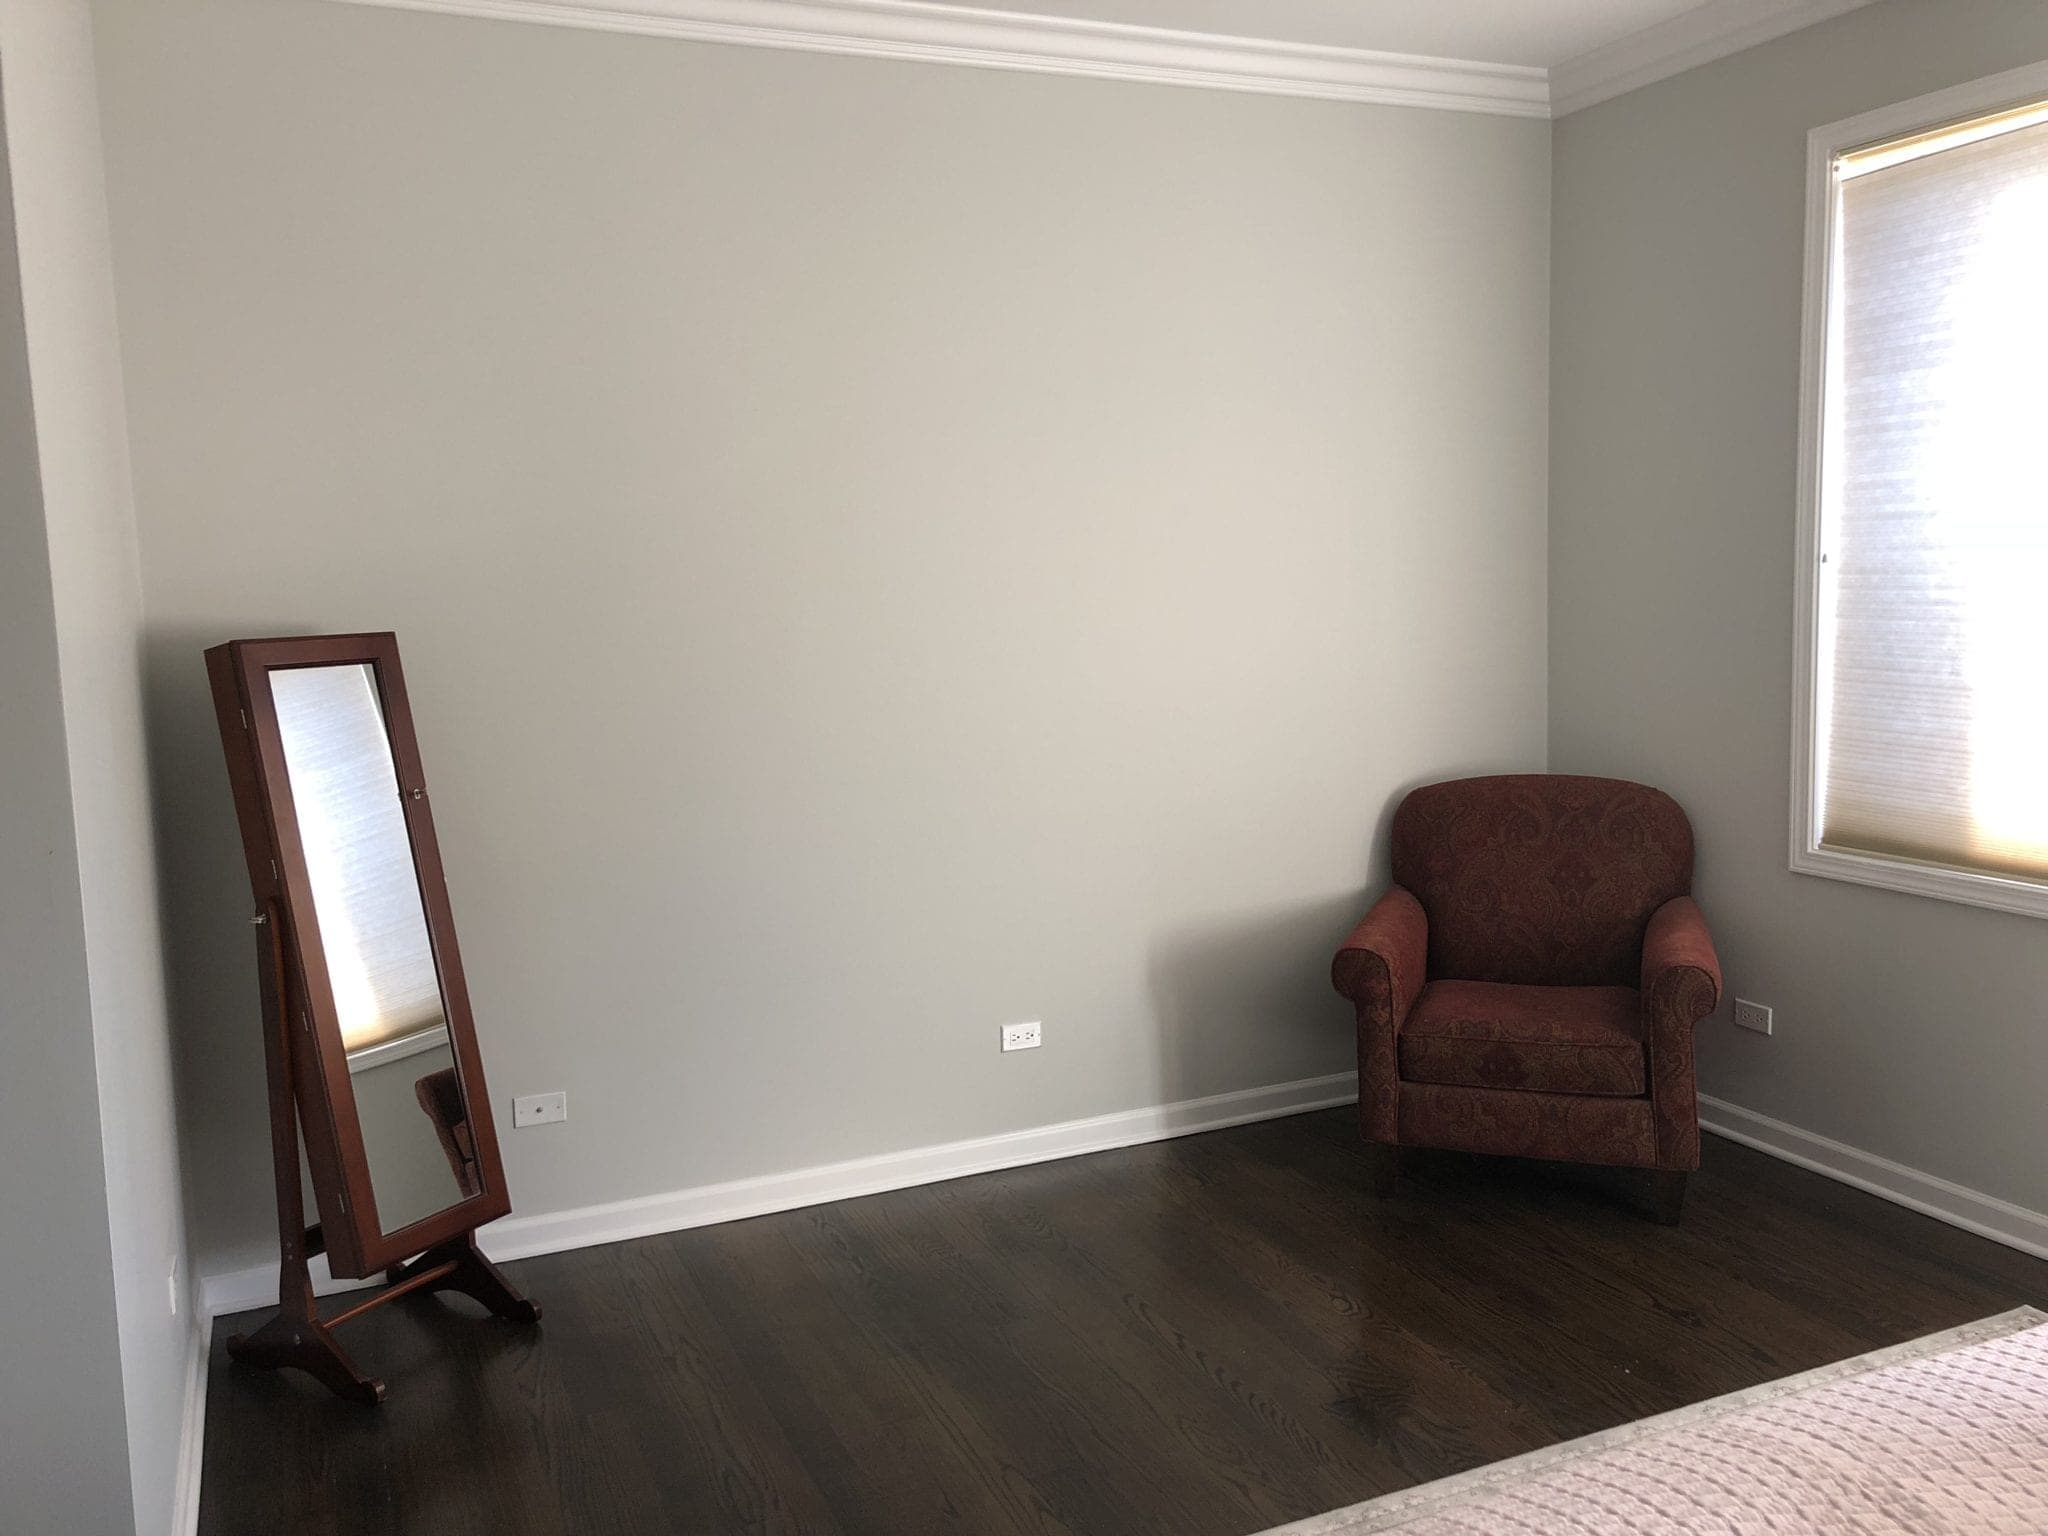 Before photos of a blank wall in a bedroom